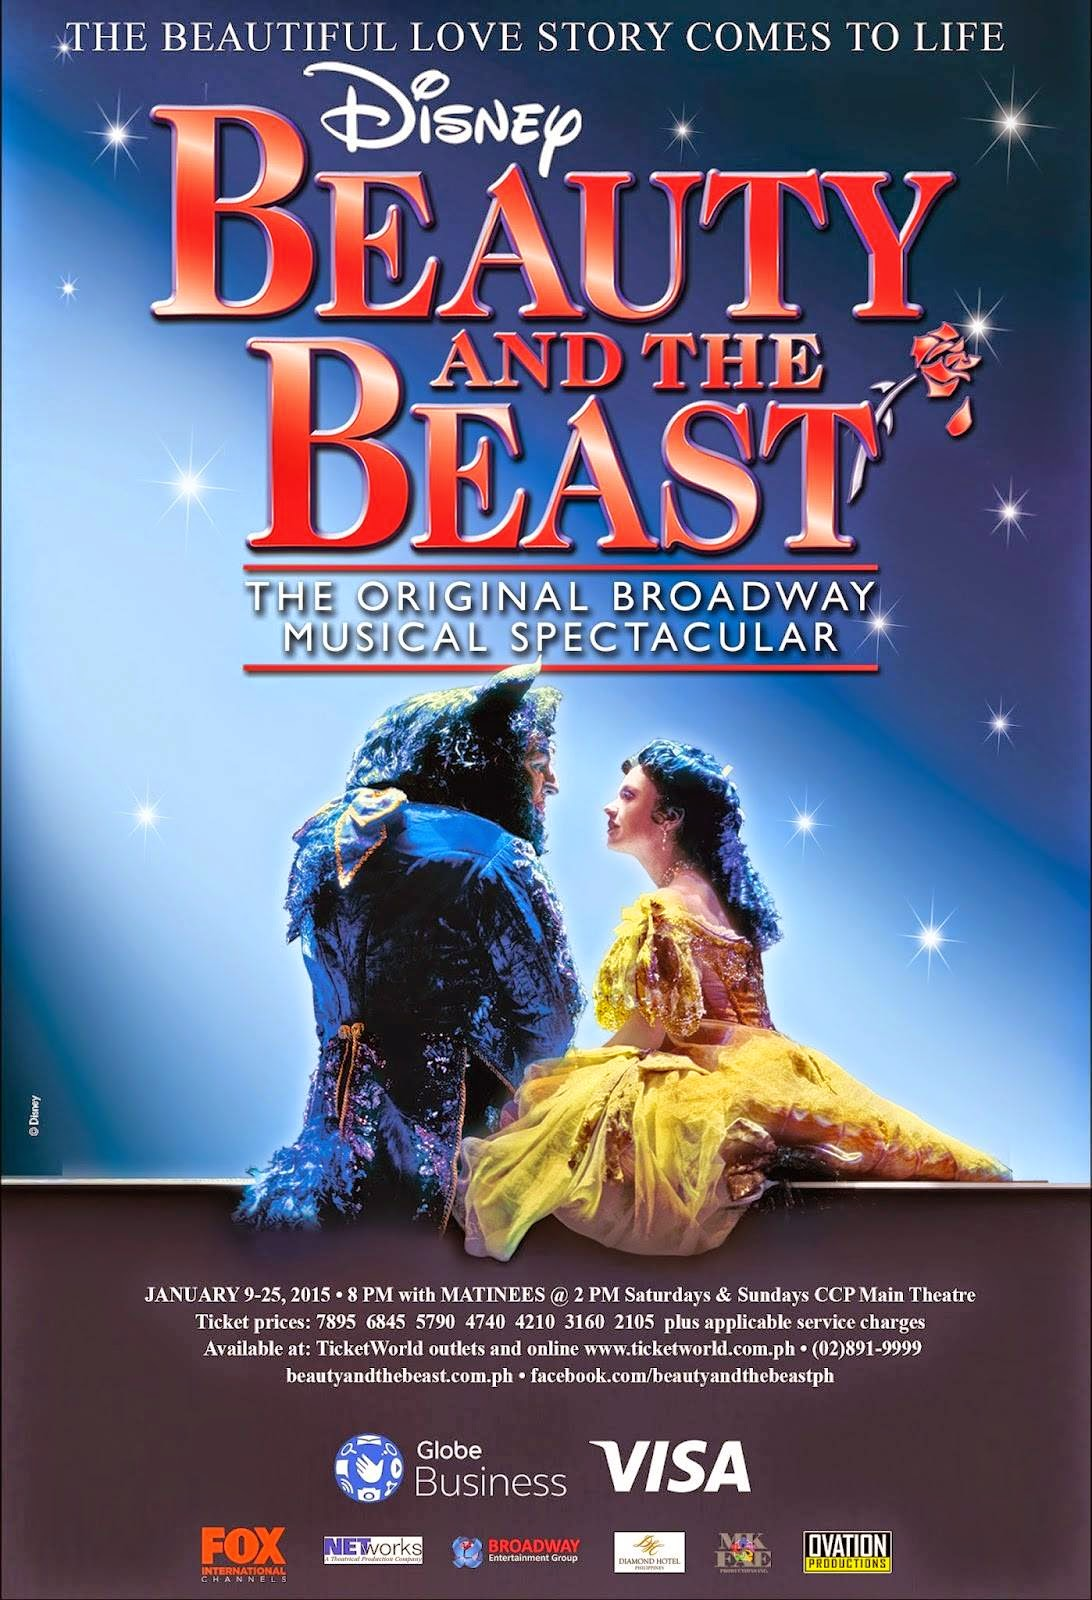 GET BEAUTY AND THE BEAST TICKETS HERE